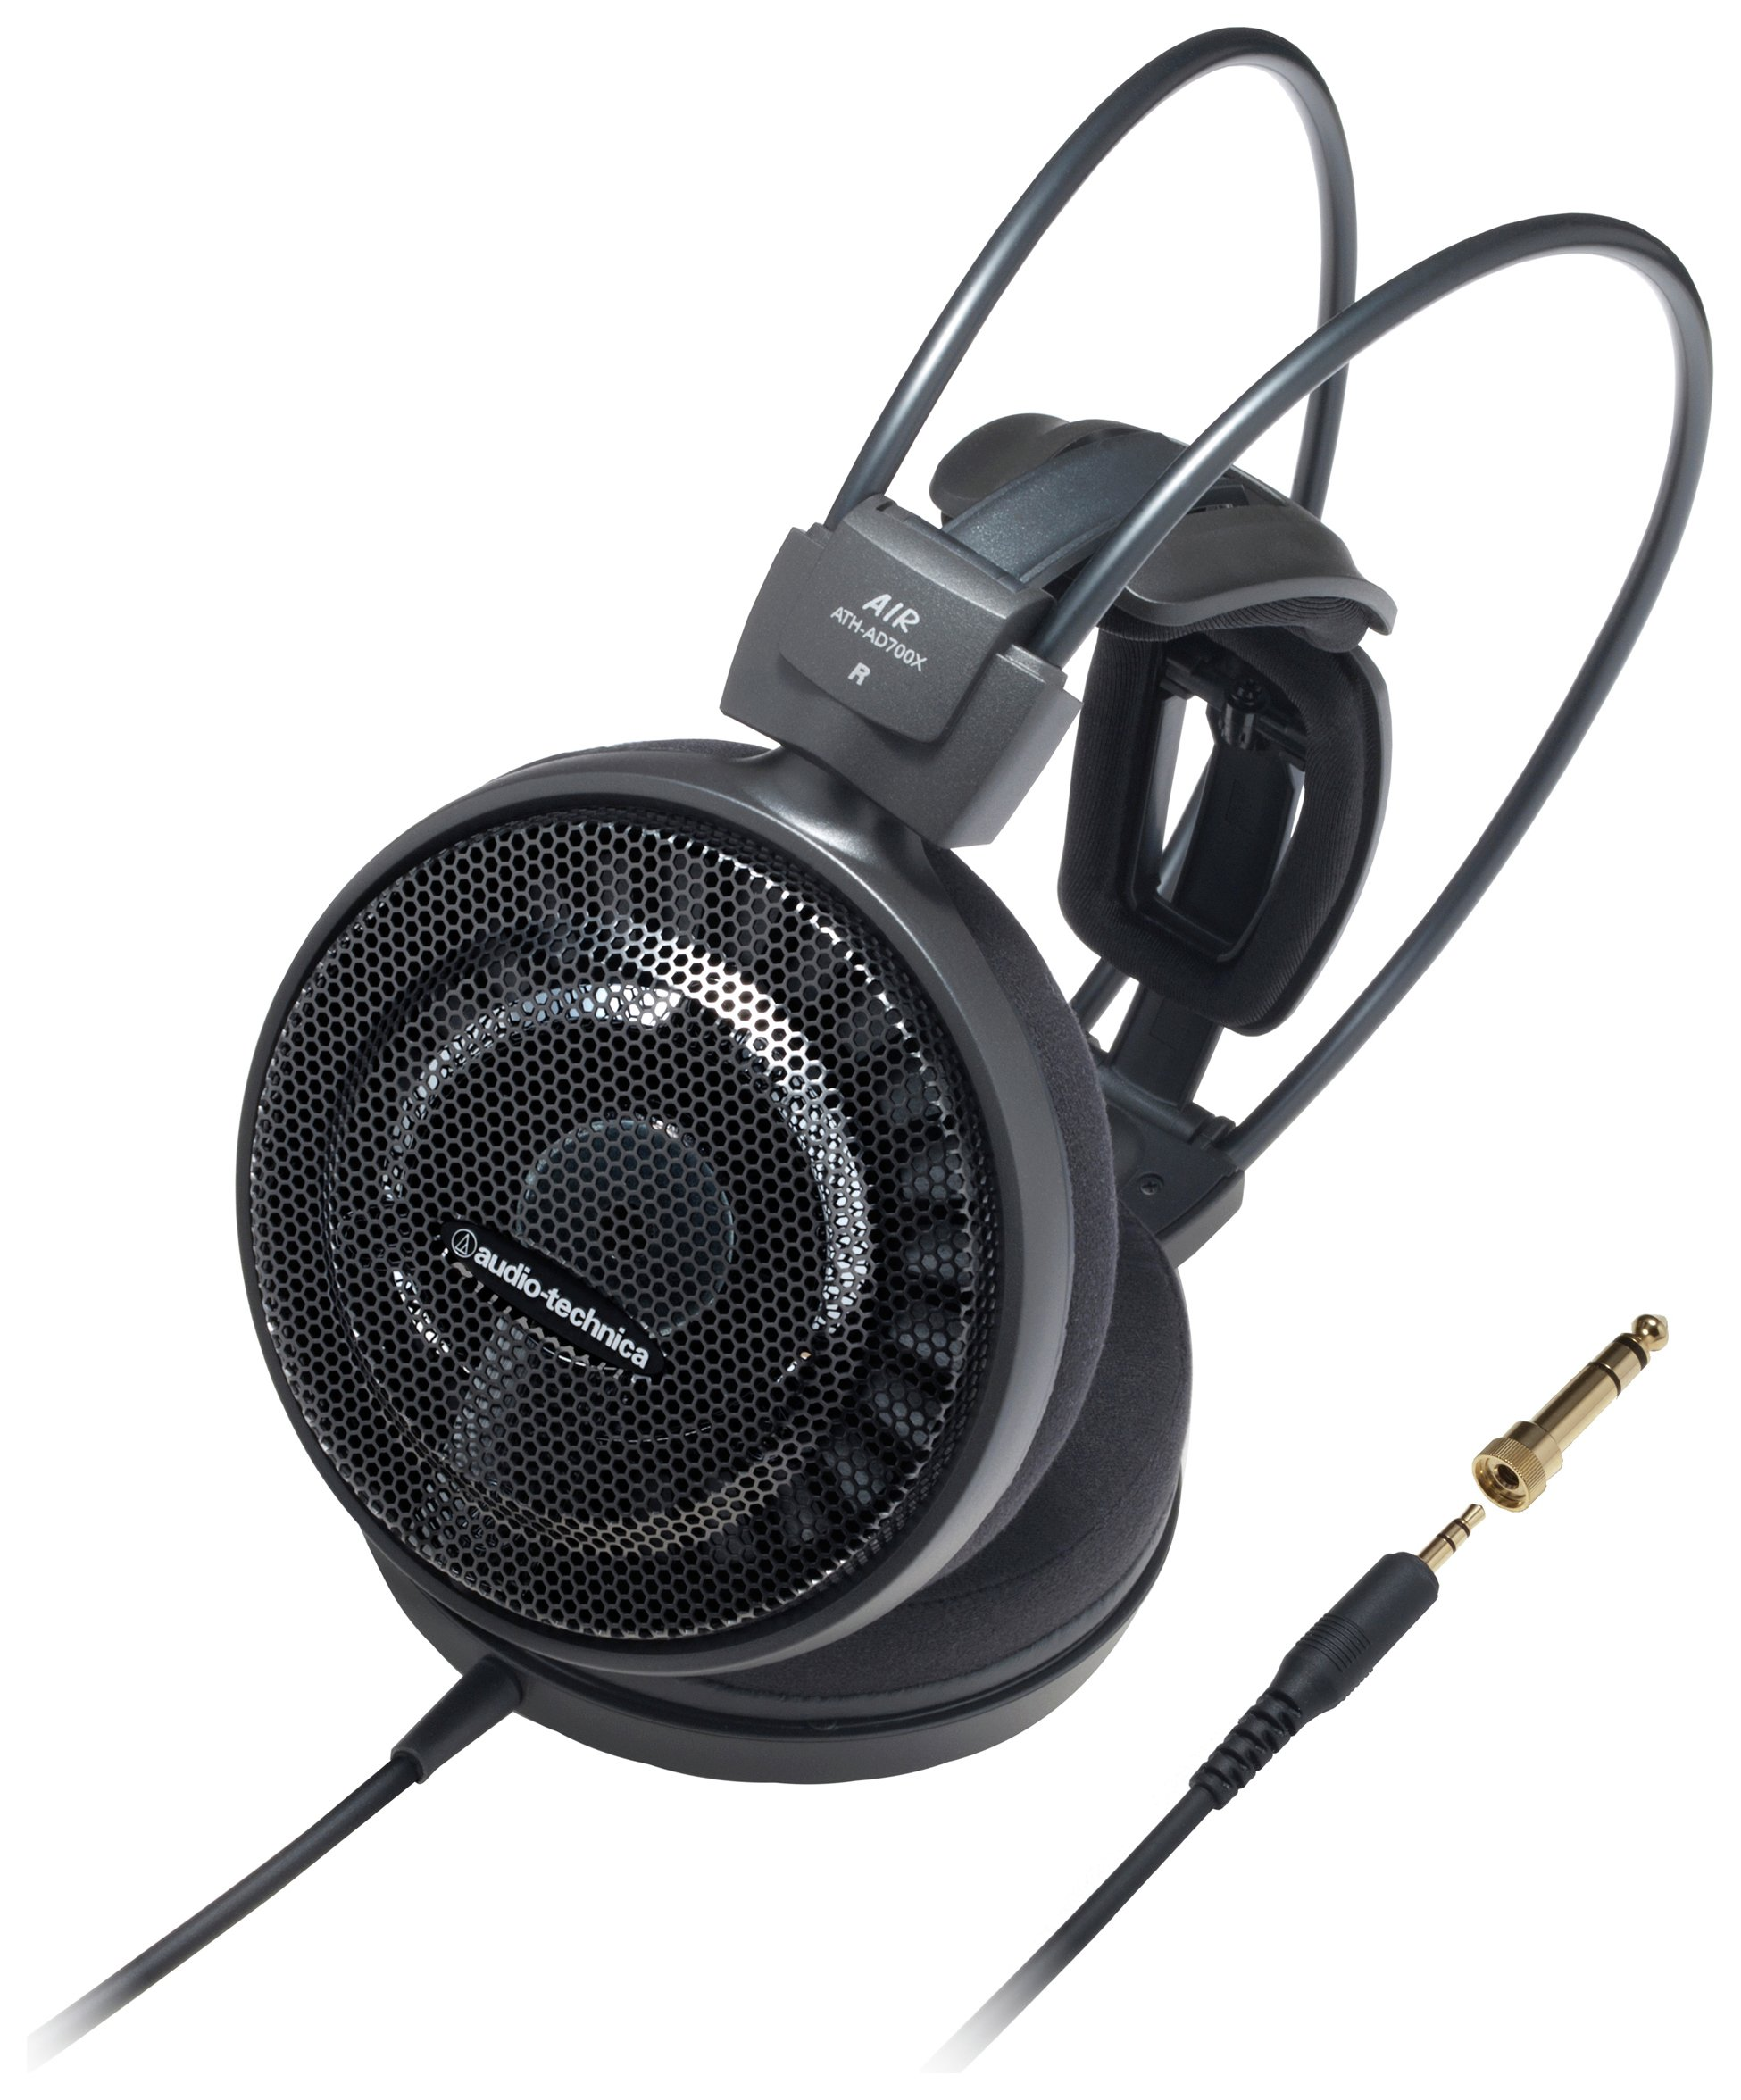 Image of Audio Technica ATH-AD700X On-Ear Headphones - Black.